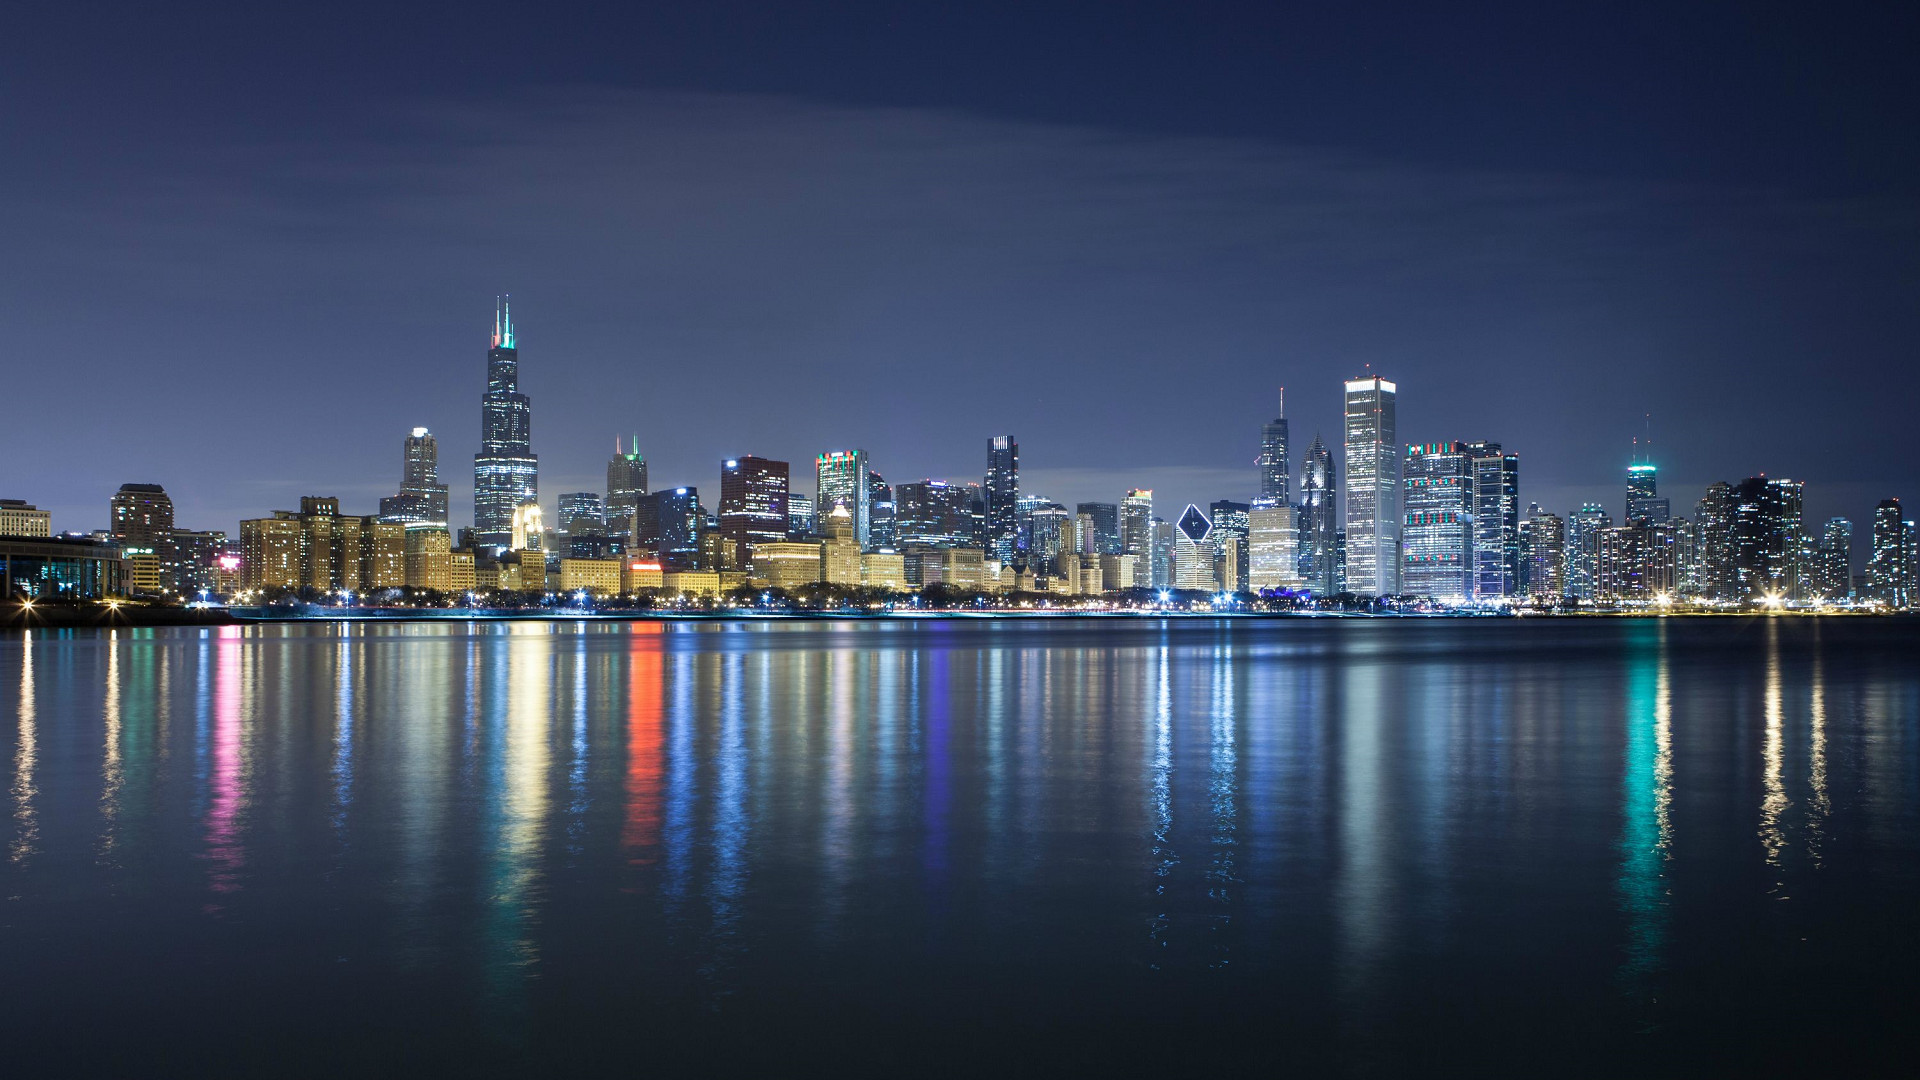 1920x1080 wallpaper.wiki-HD-Chicago-Skyline-Photo-PIC-WPE005434